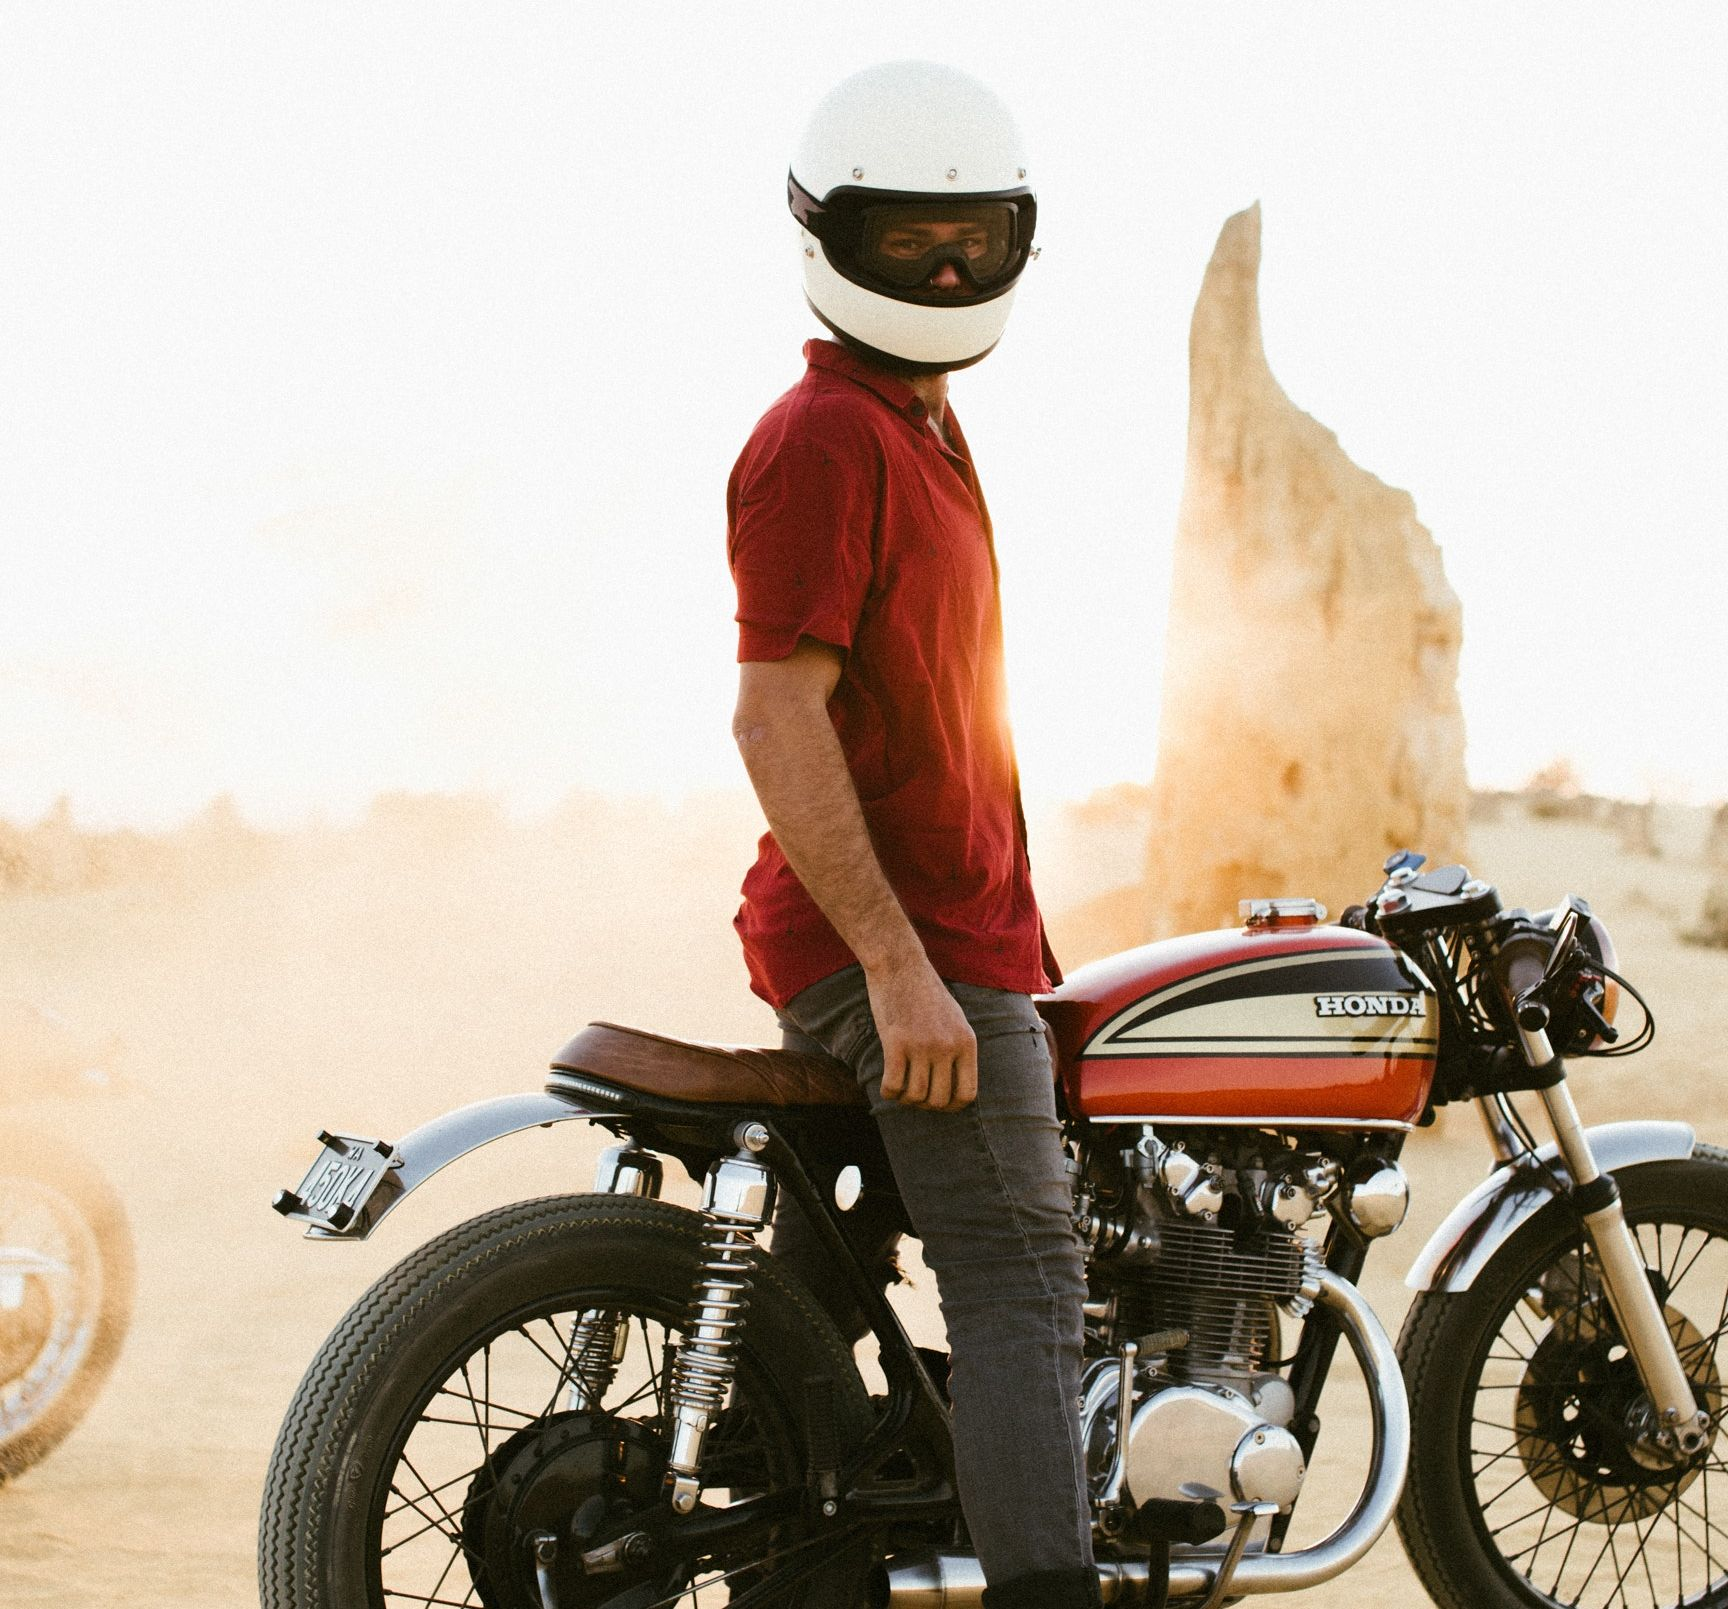 does riding a motorcycle have health benefits